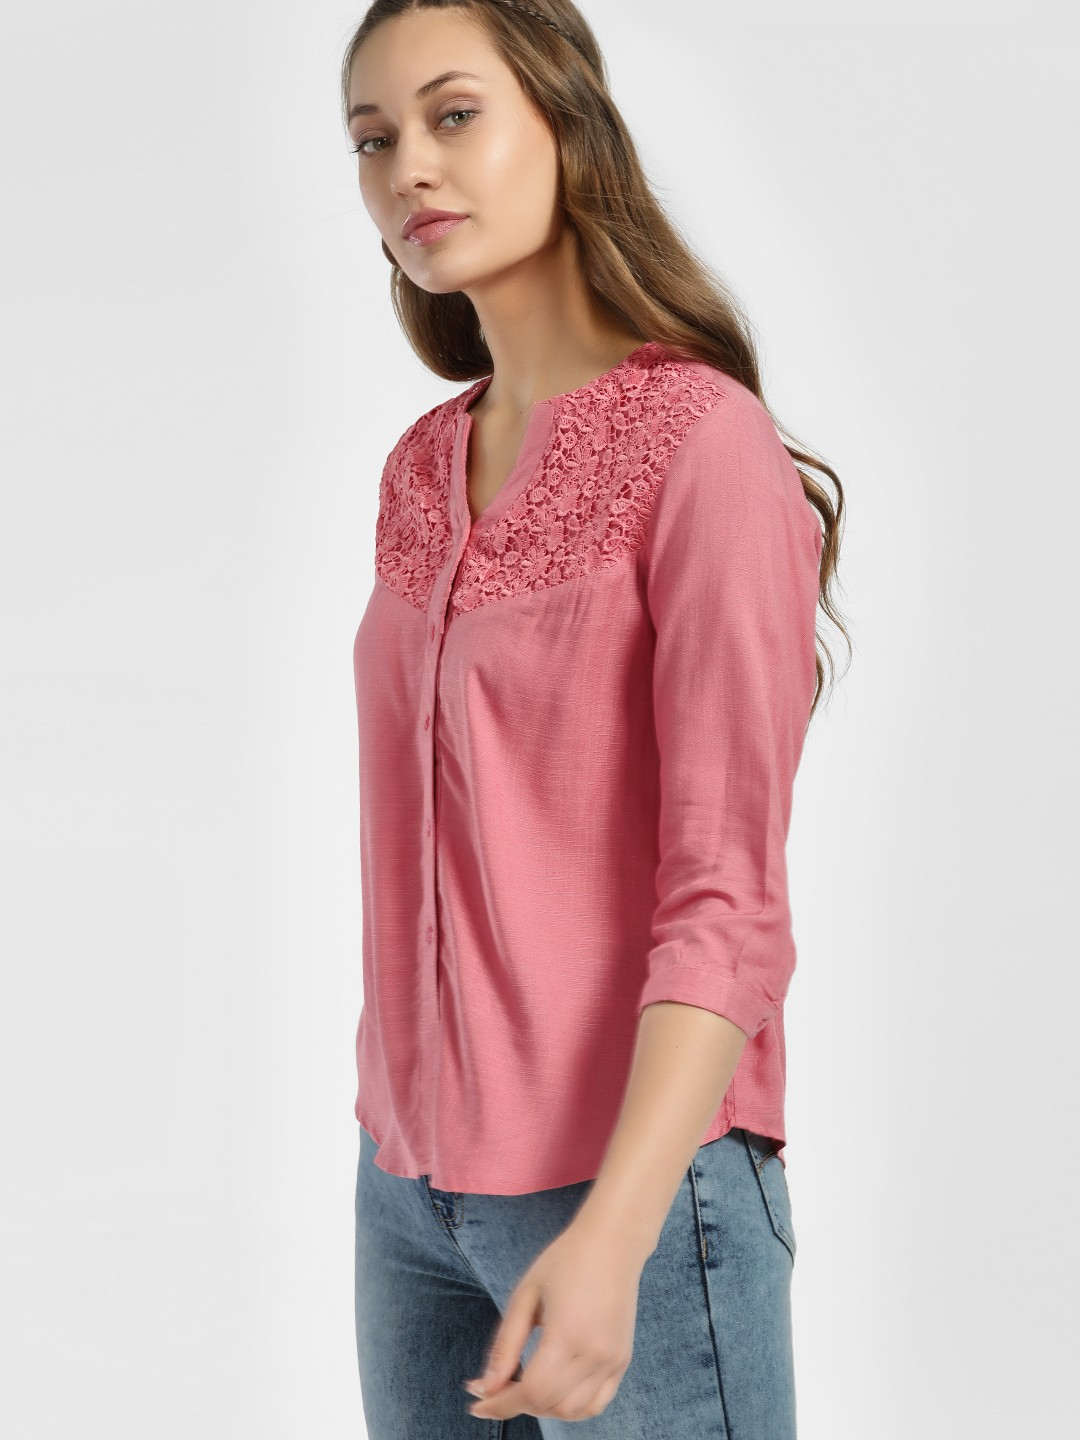 NUSH Pink V-Neck Lace Yoke Blouse 1